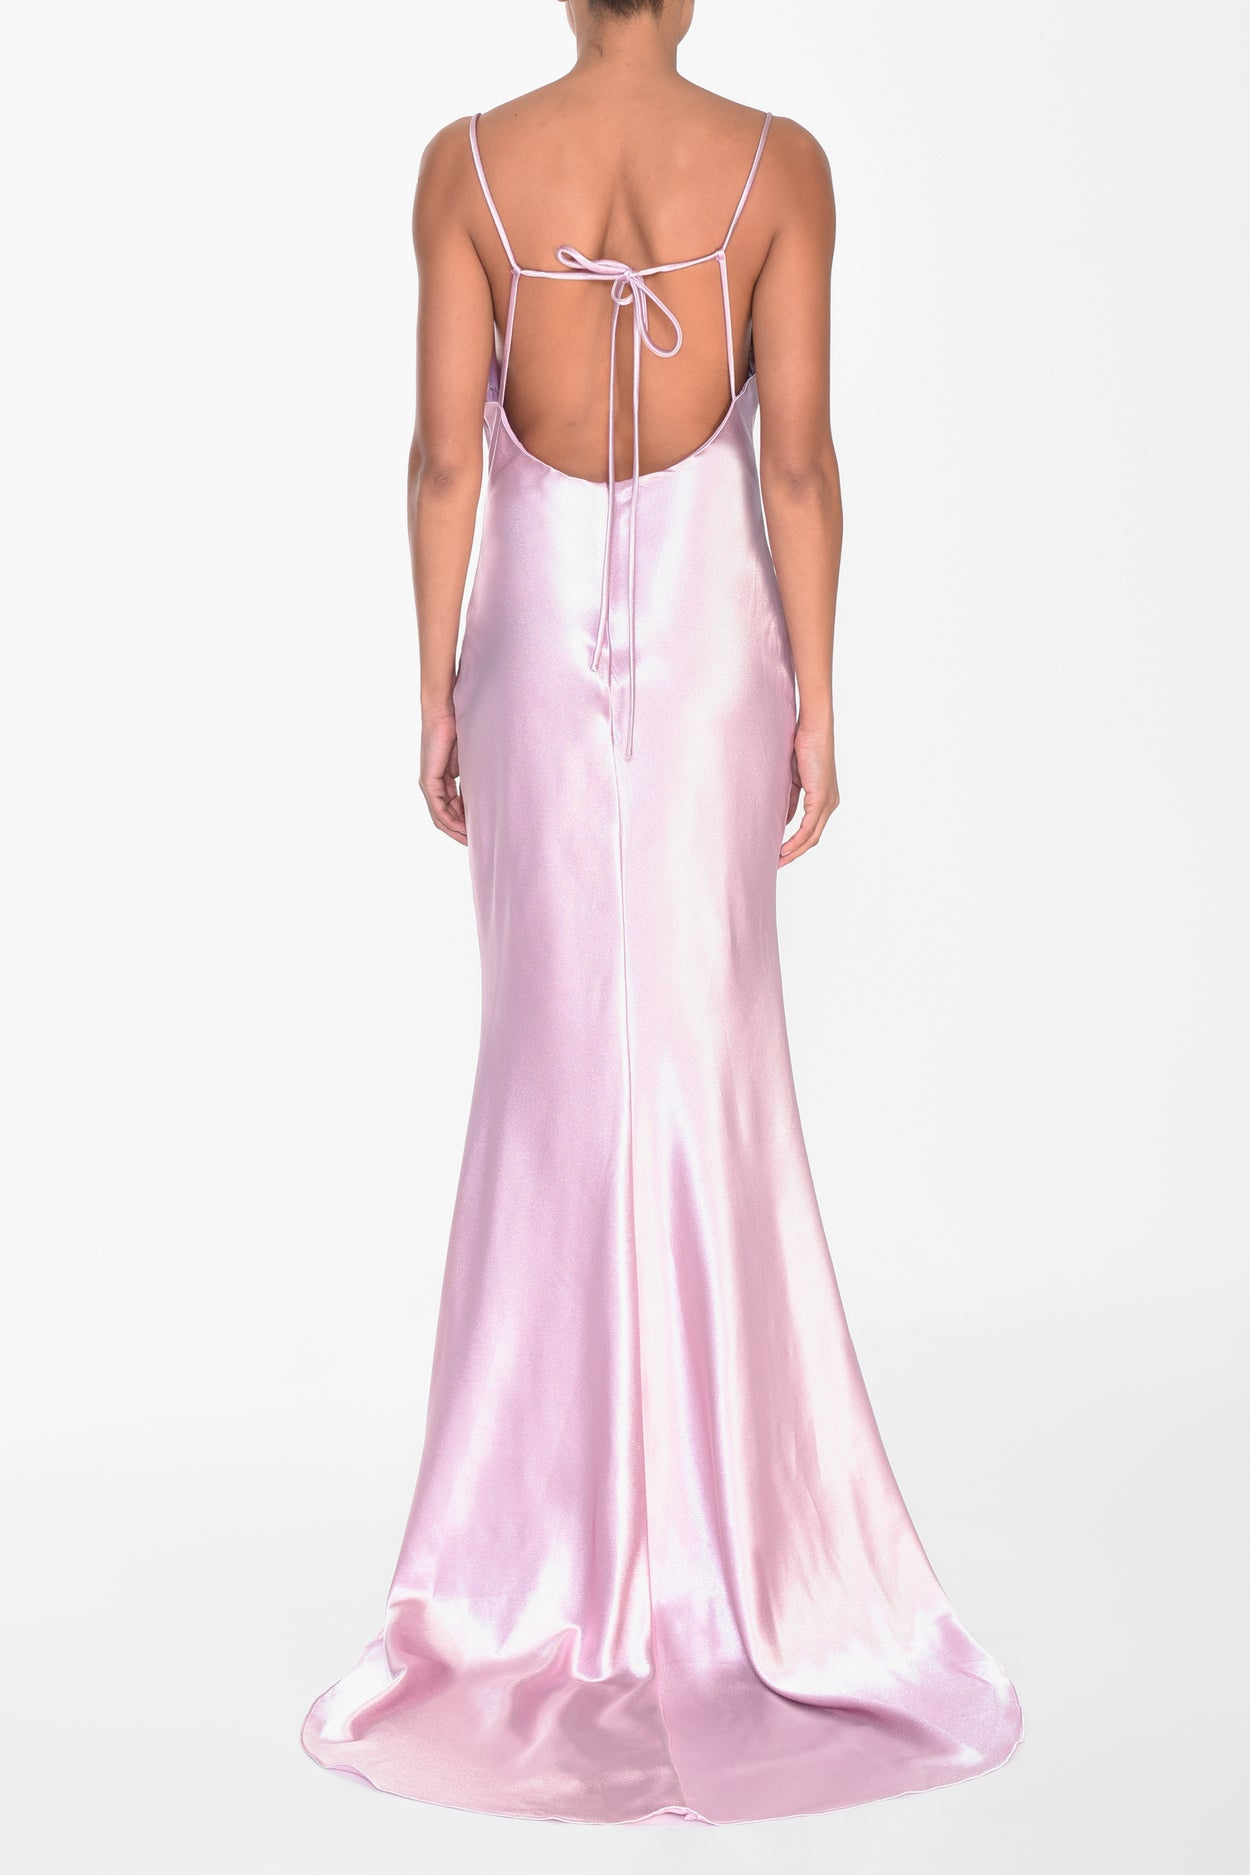 Dusty Pink Satin Cowl Neck Slip Dress